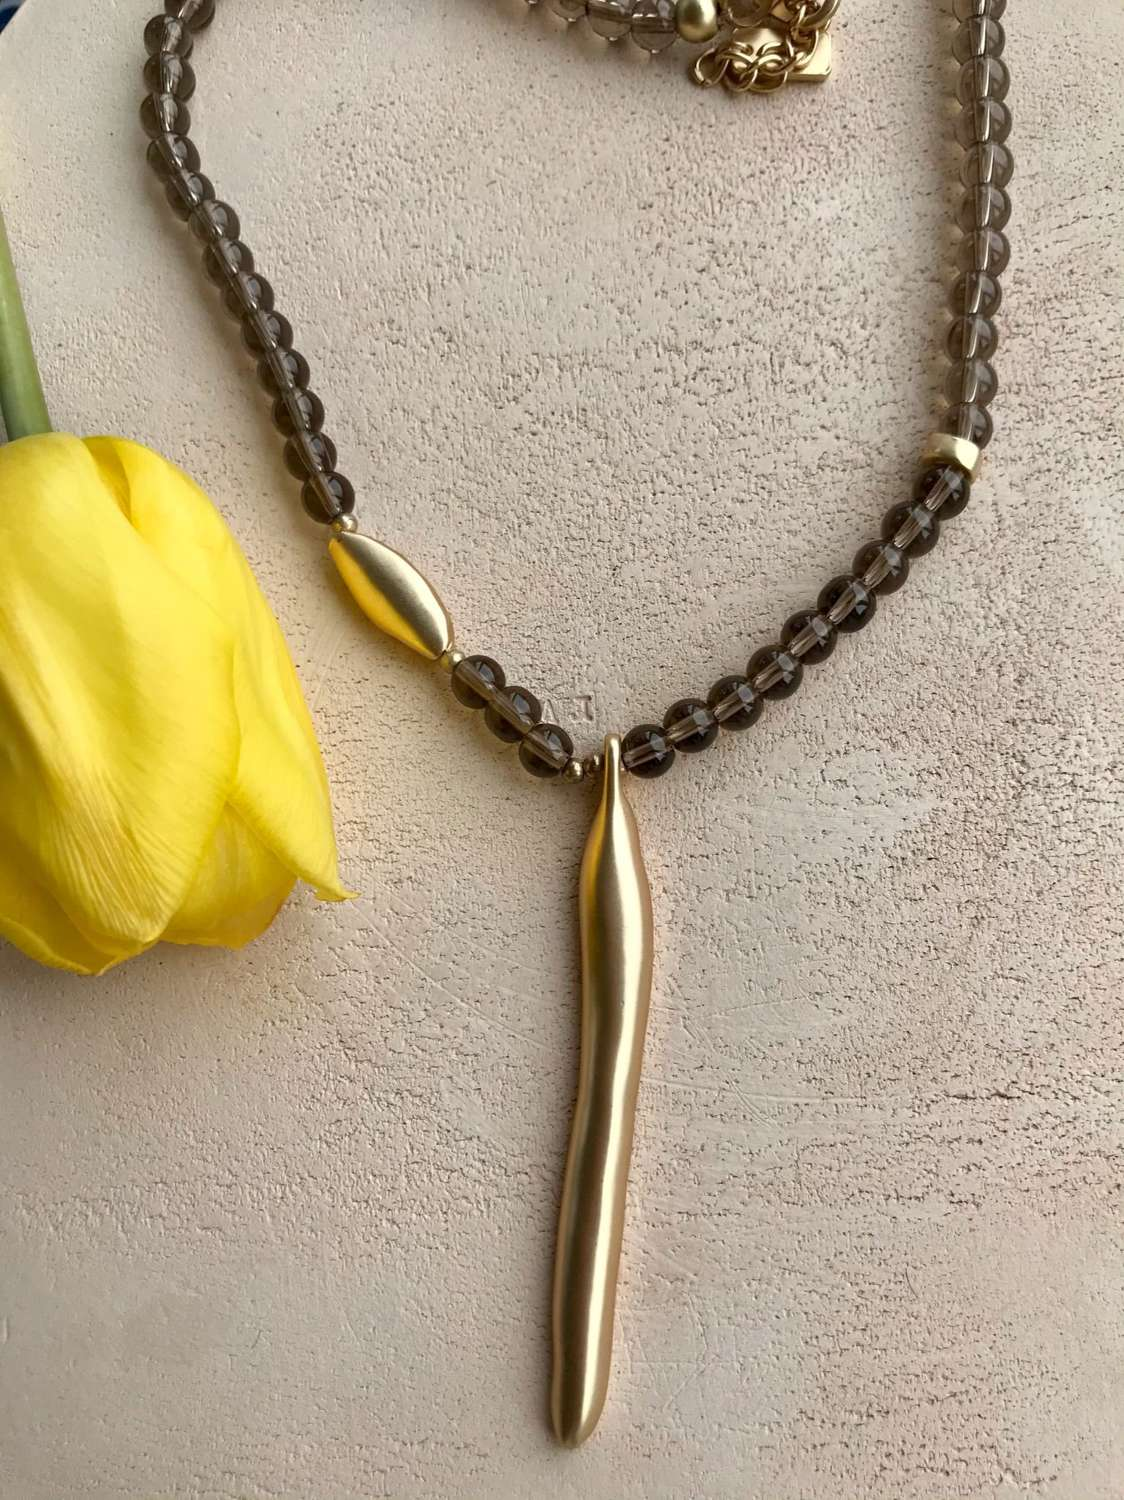 All bronzed necklace